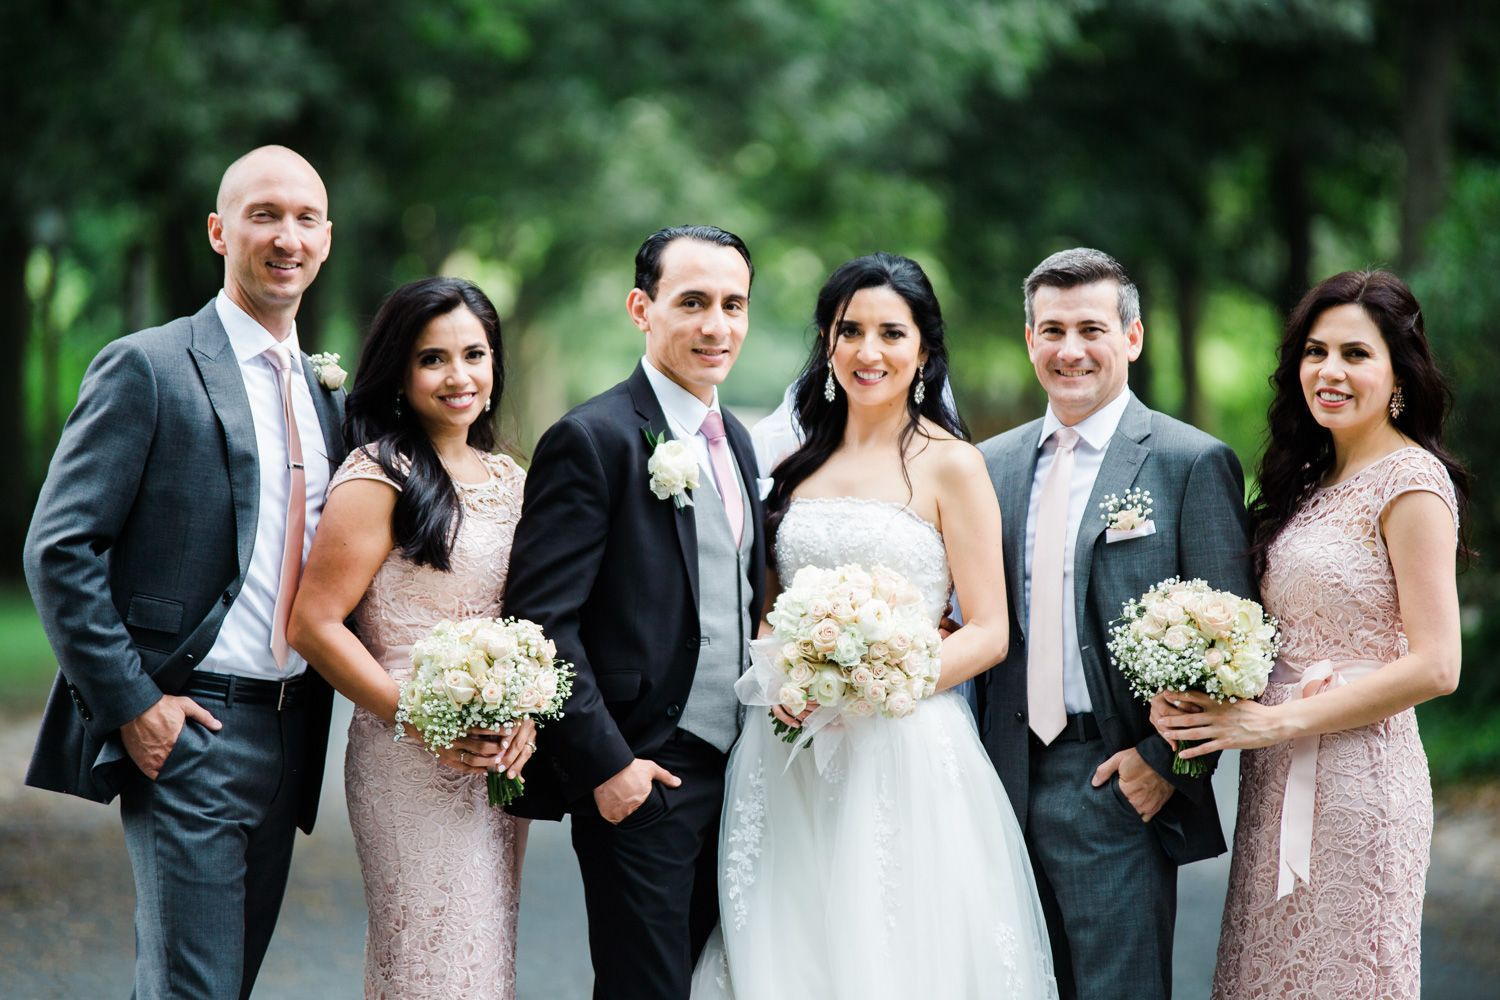 Wedding party with bridesmaids in blush lace and groomsmen in grey suits